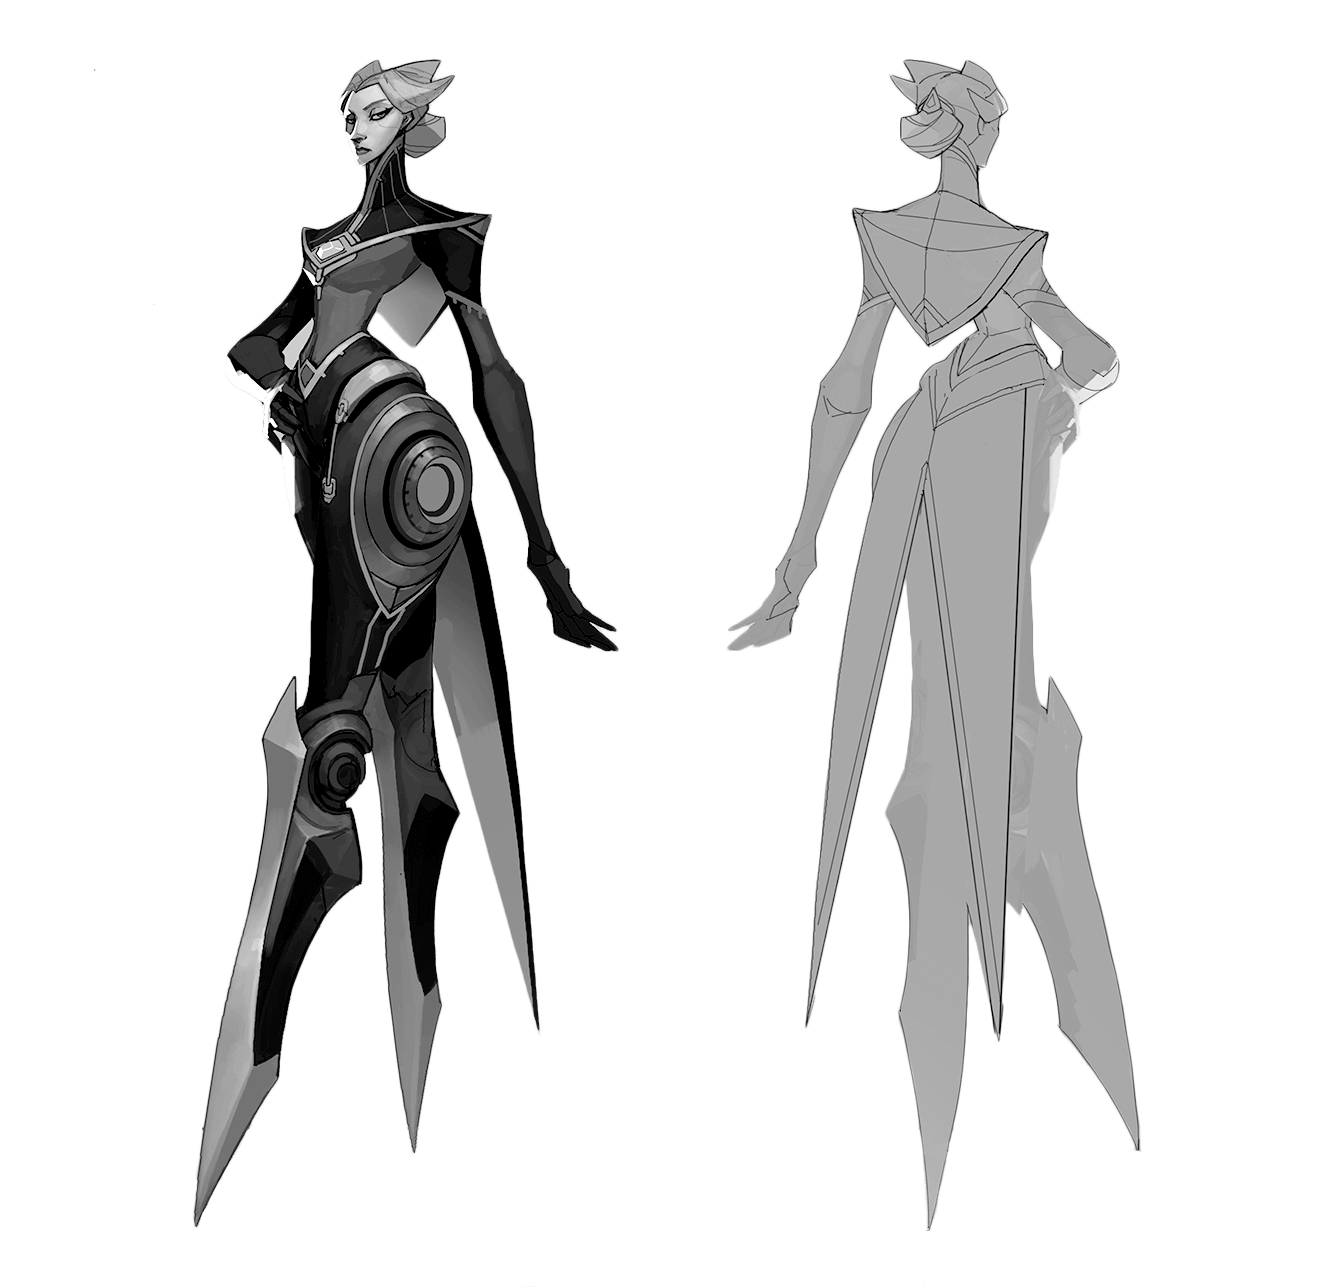 Camille concepting